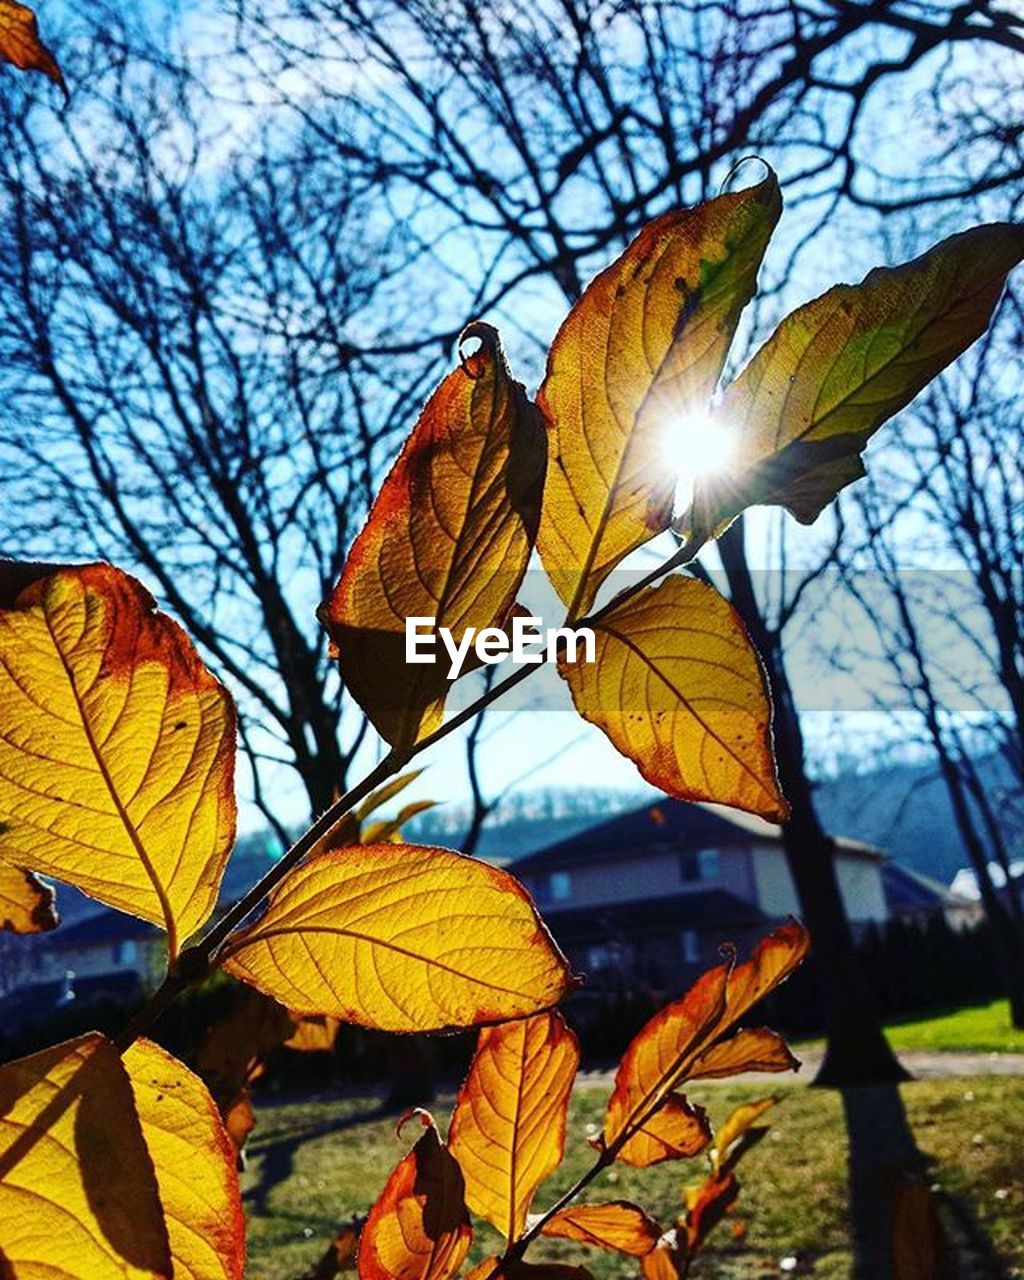 leaf, plant part, autumn, plant, tree, nature, no people, change, sunlight, close-up, yellow, day, beauty in nature, sky, focus on foreground, branch, low angle view, growth, outdoors, leaves, natural condition